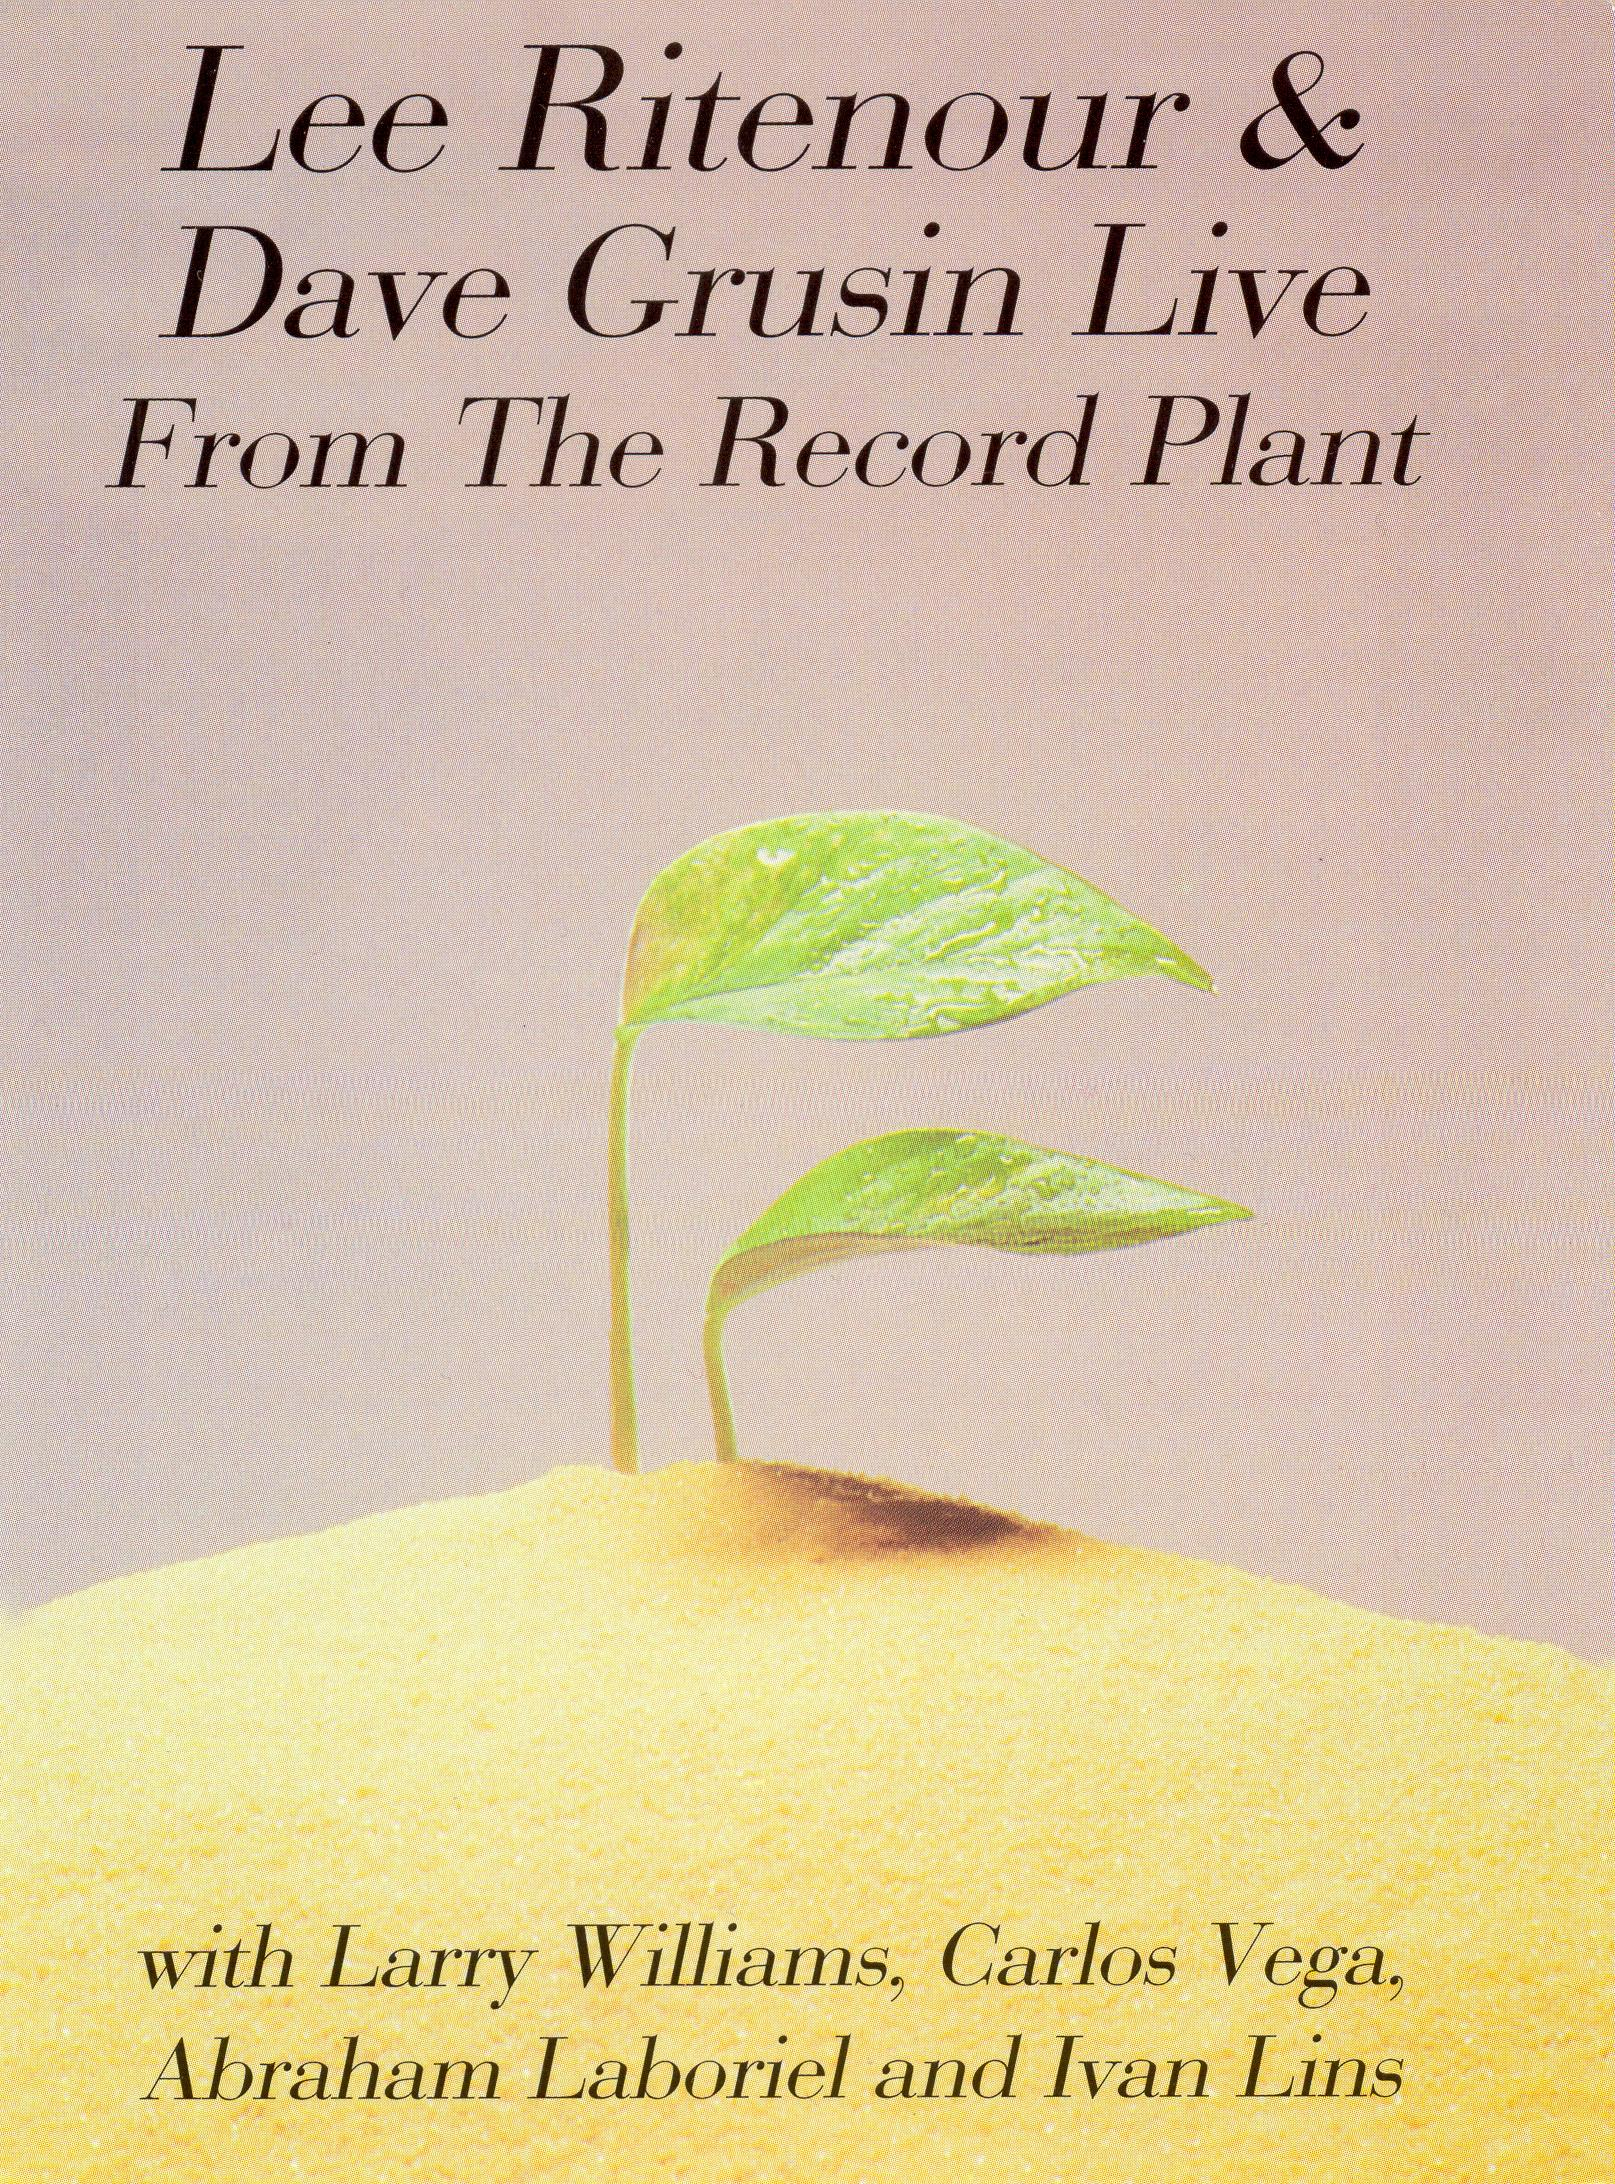 Lee Ritenour & Dave Grusin: Live from the Record Plant